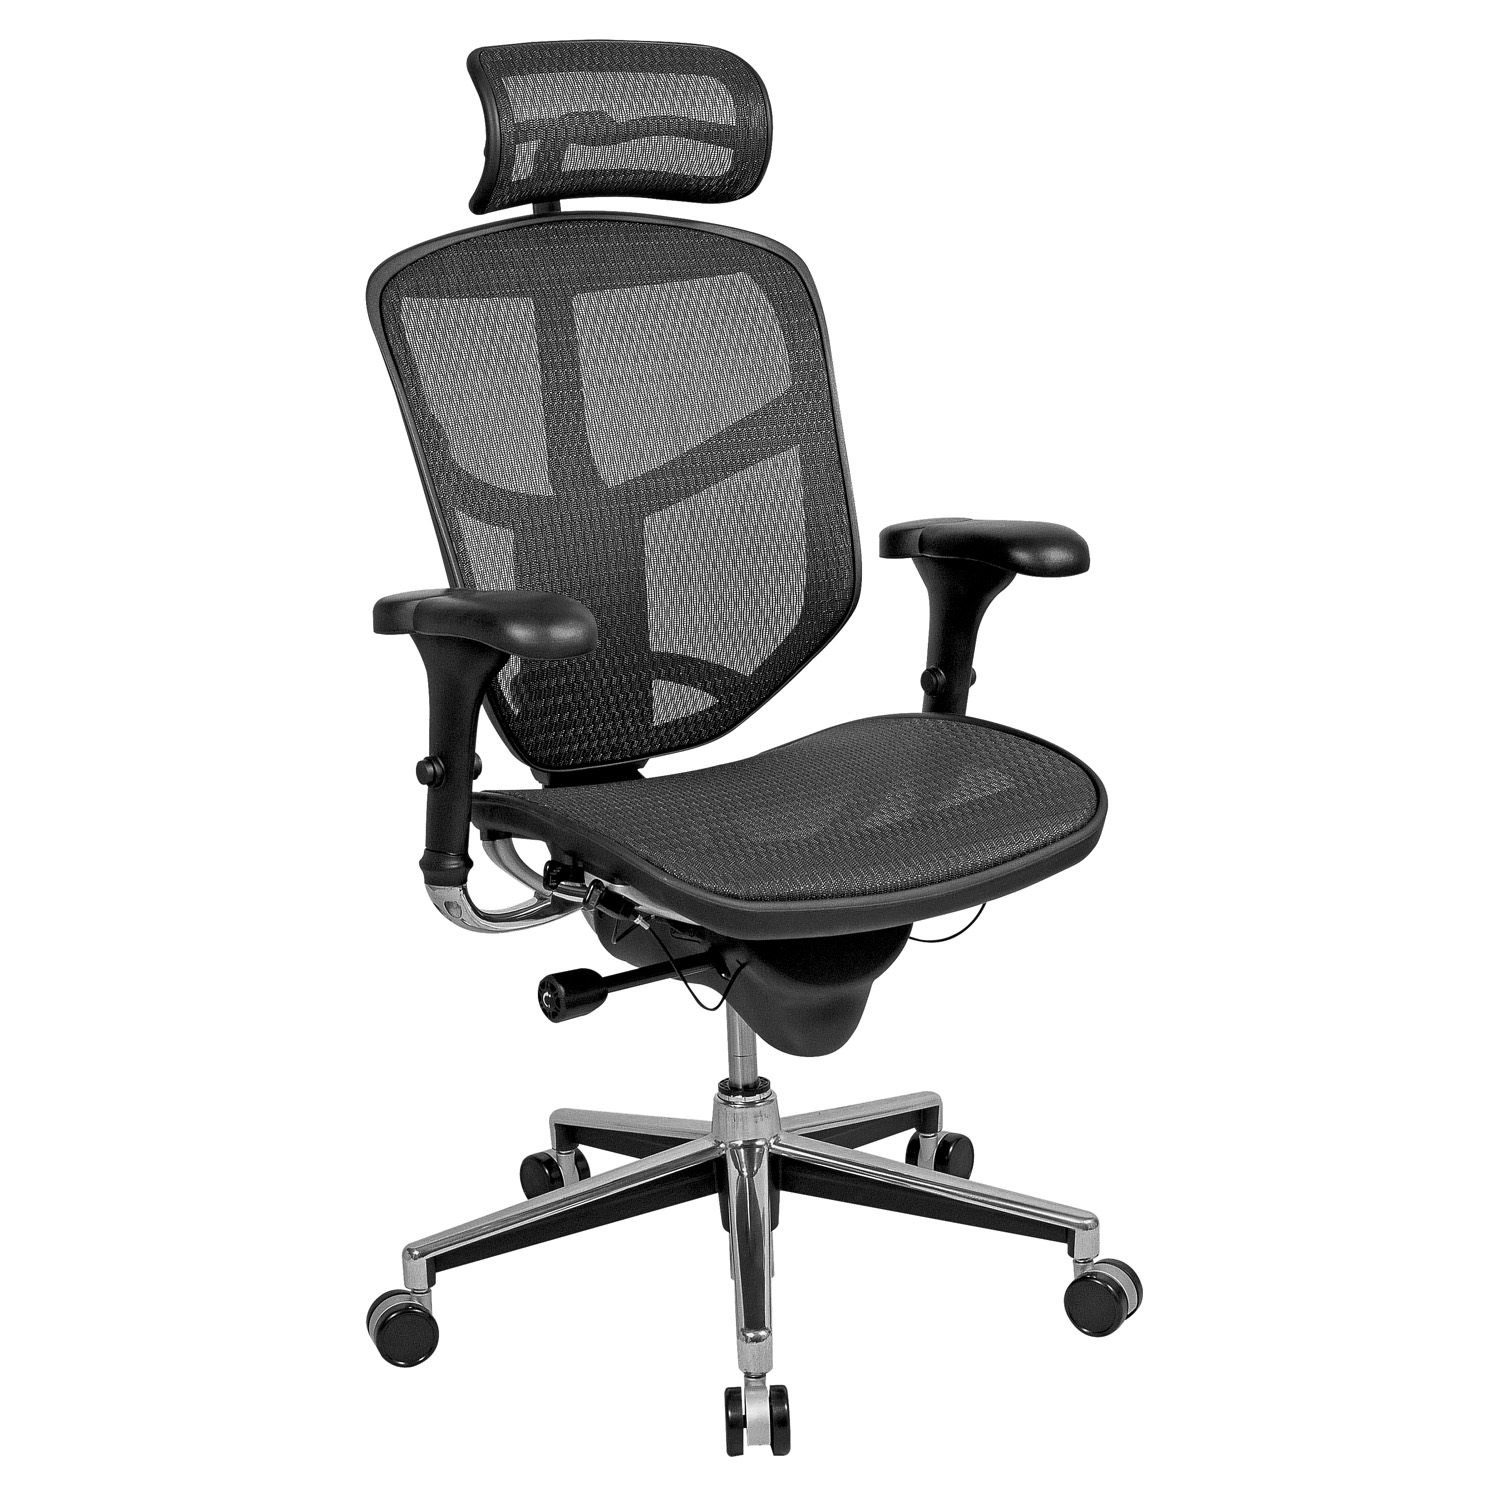 Quantum Chair Workpro Pro Quantum 9000 Series Ergonomic Mesh High Back